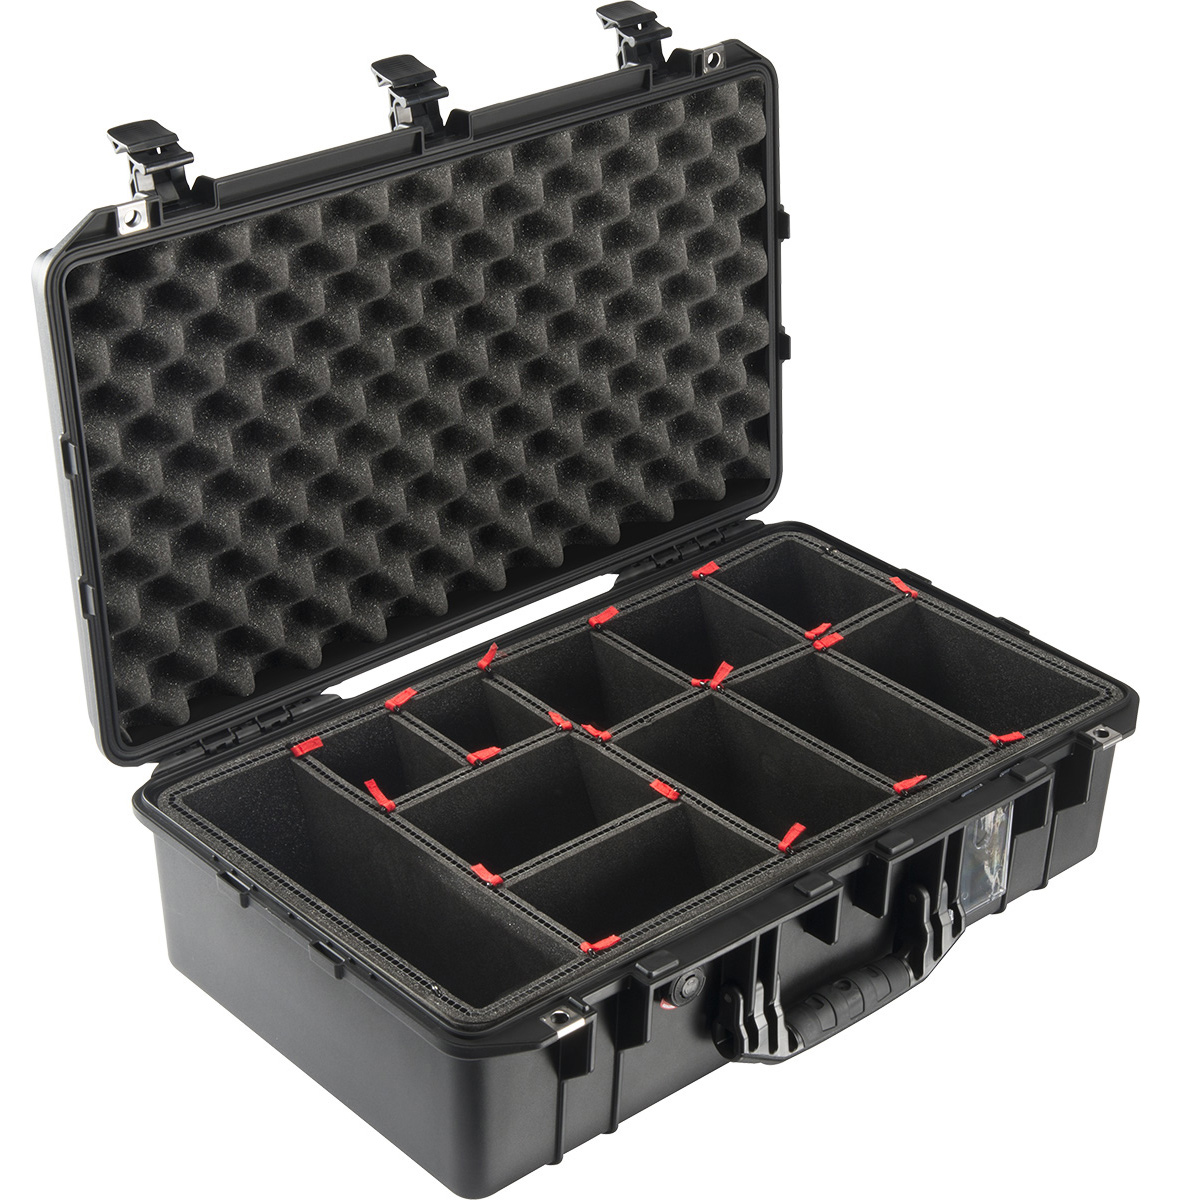 Peli Air 1555 TrekPak